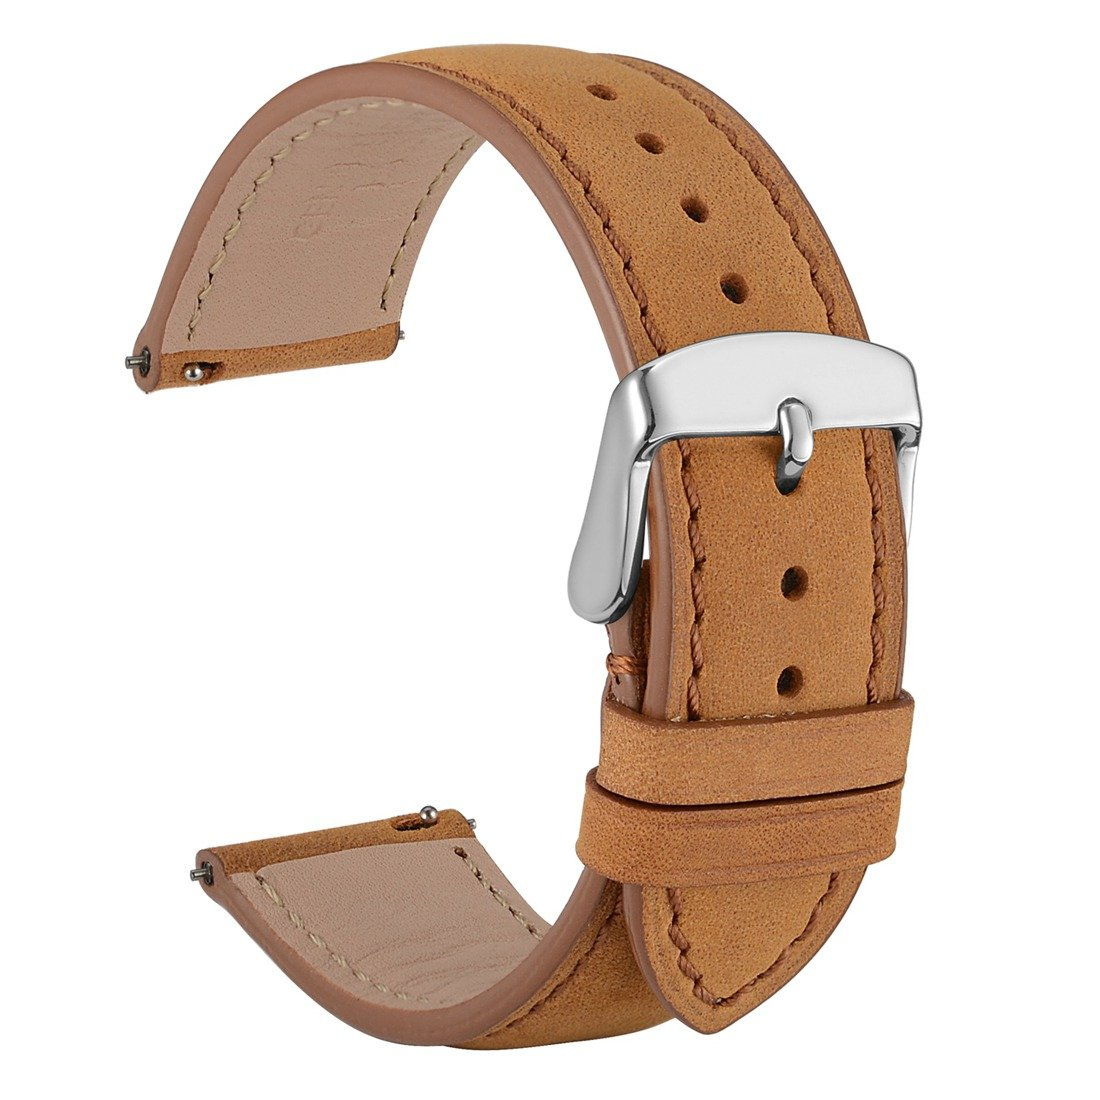 WOCCI 22mm Suede Vintage Leather Watch Band with Pins Buckle, Quick Release Strap (Light Brown with Tone on Tone Seam)